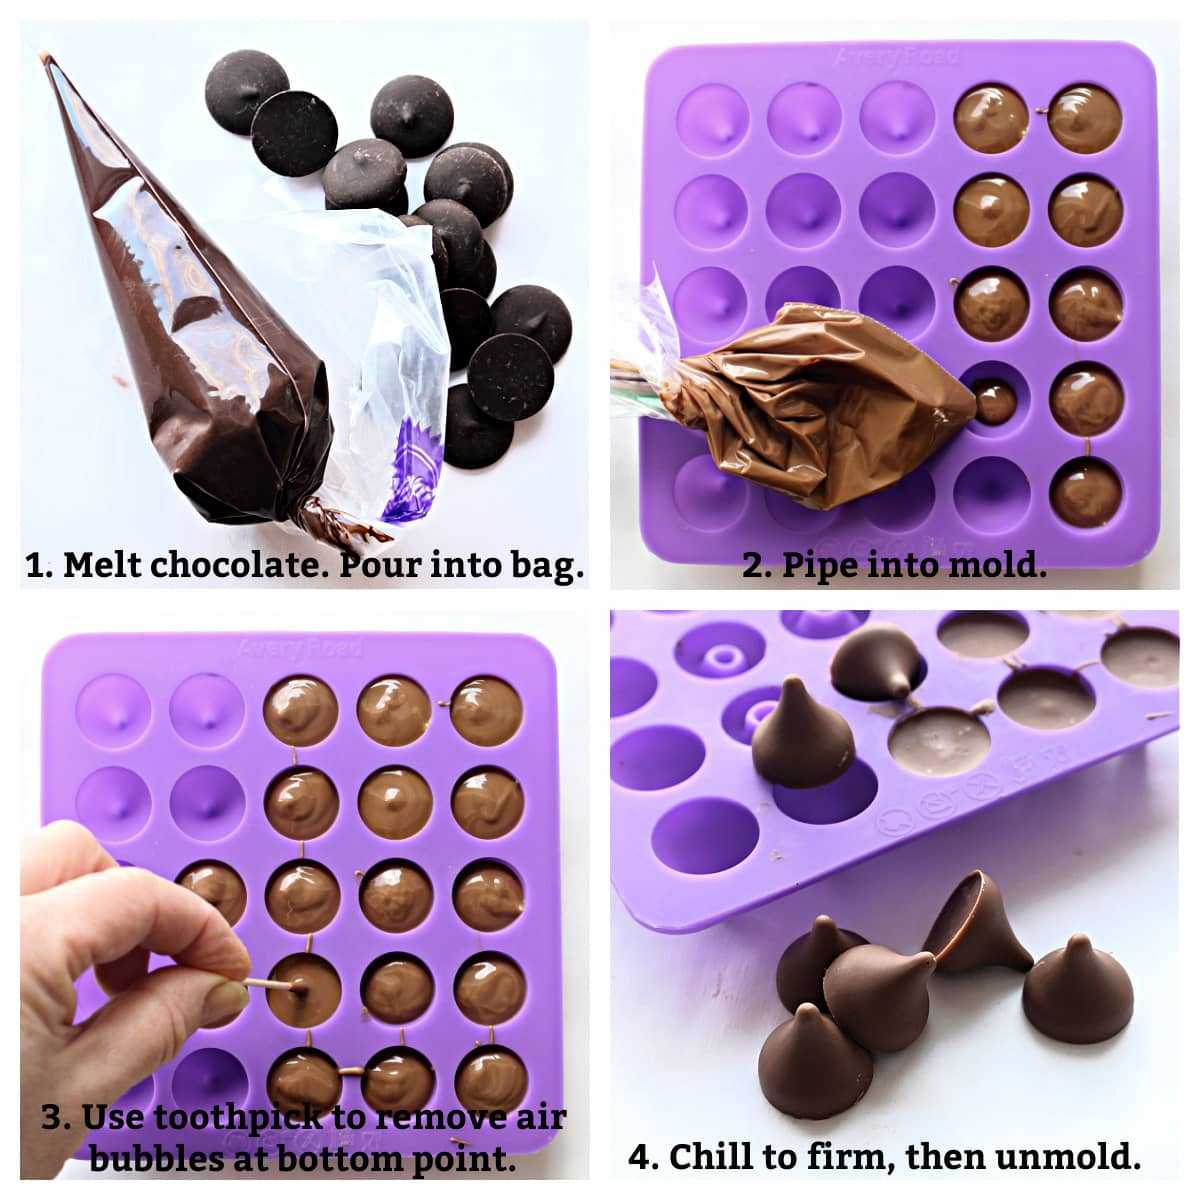 Directions collage: melted chocolate in bag, pipe into mold, removing air bubbles with toothpick, chill, unmold.